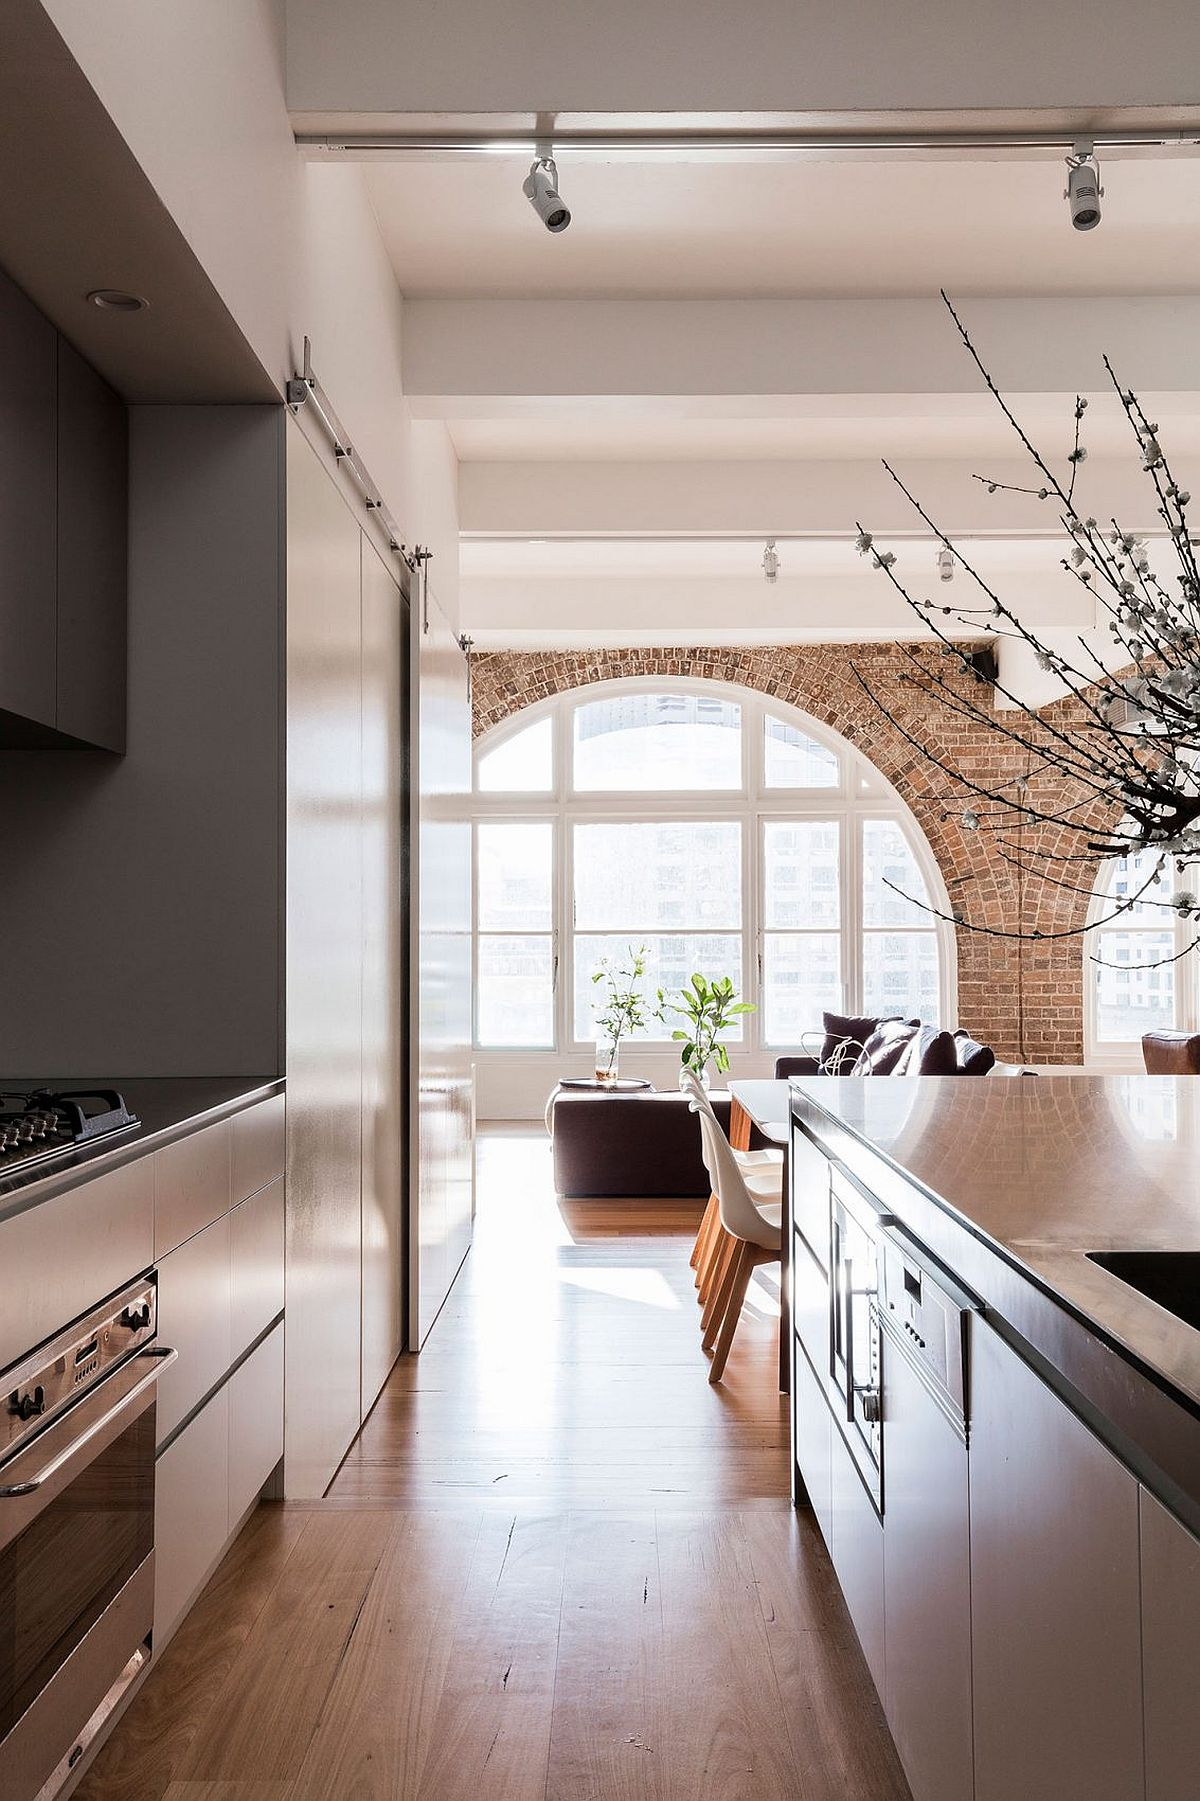 Classic windows and exposed brick walls coupled with modern aesthetics at Surry Hills